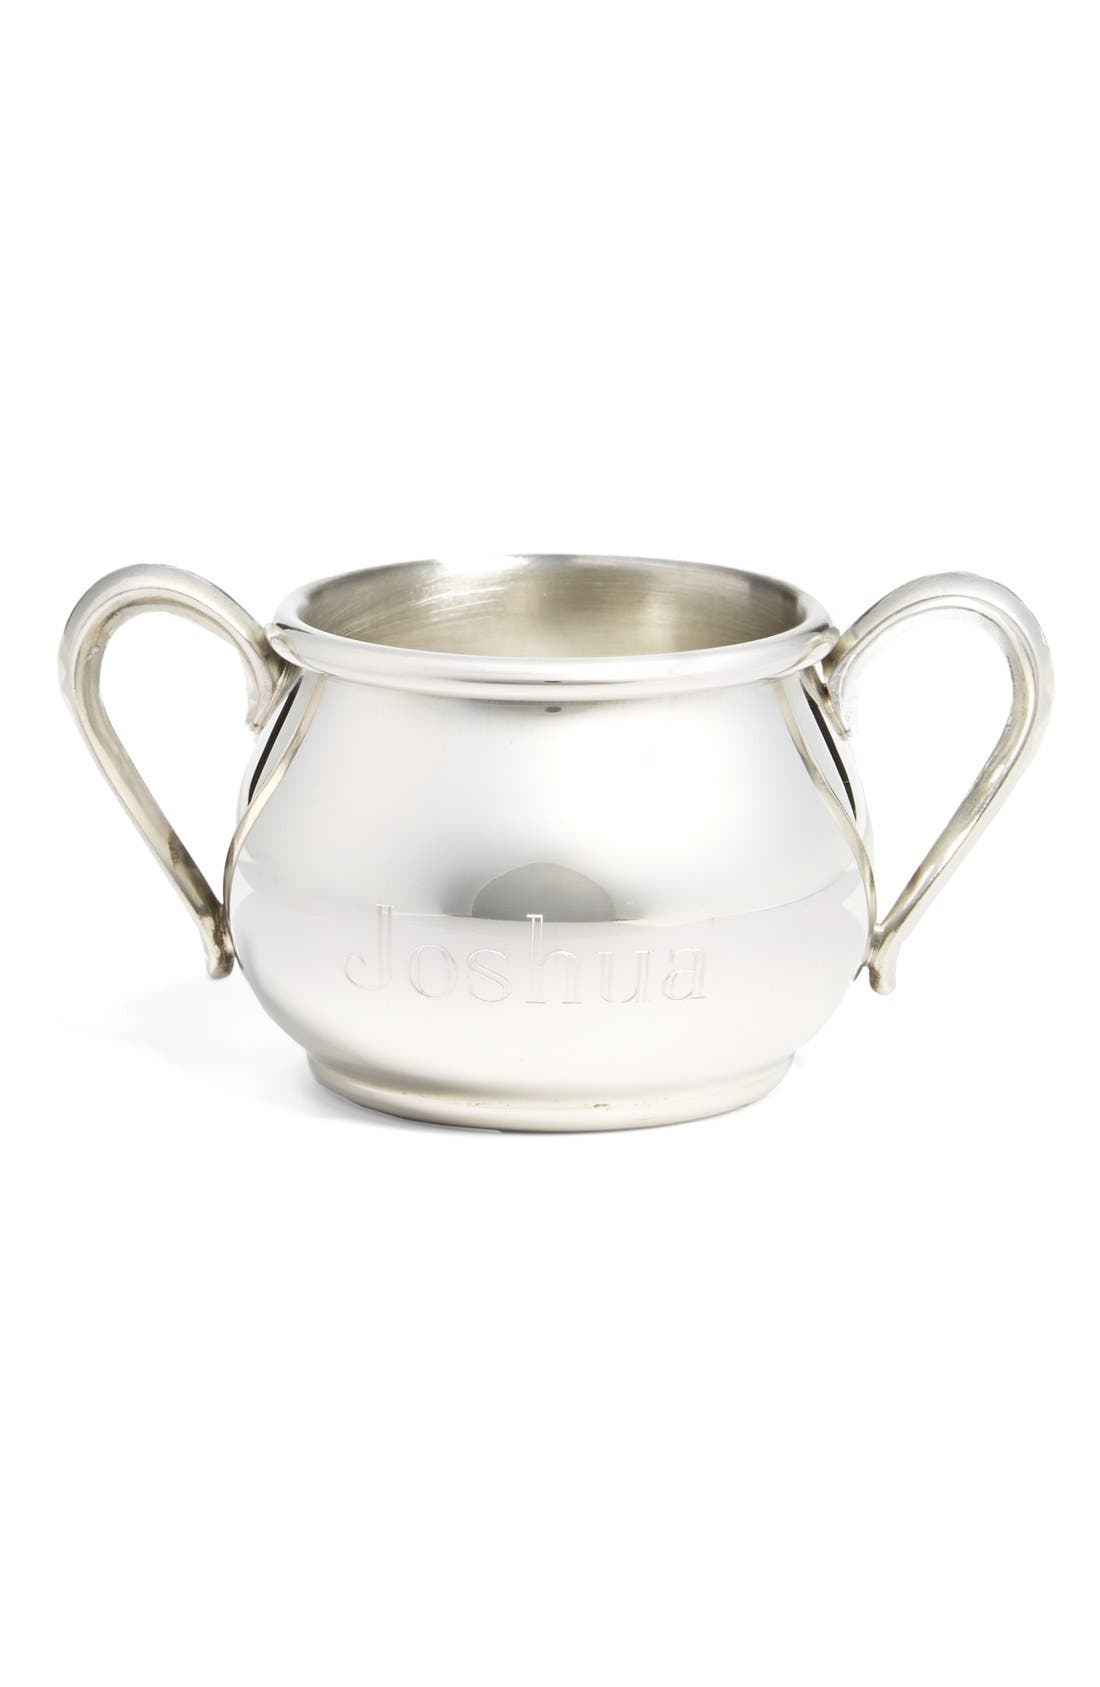 SALISBURY PEWTER Personalized Double Handle Cup